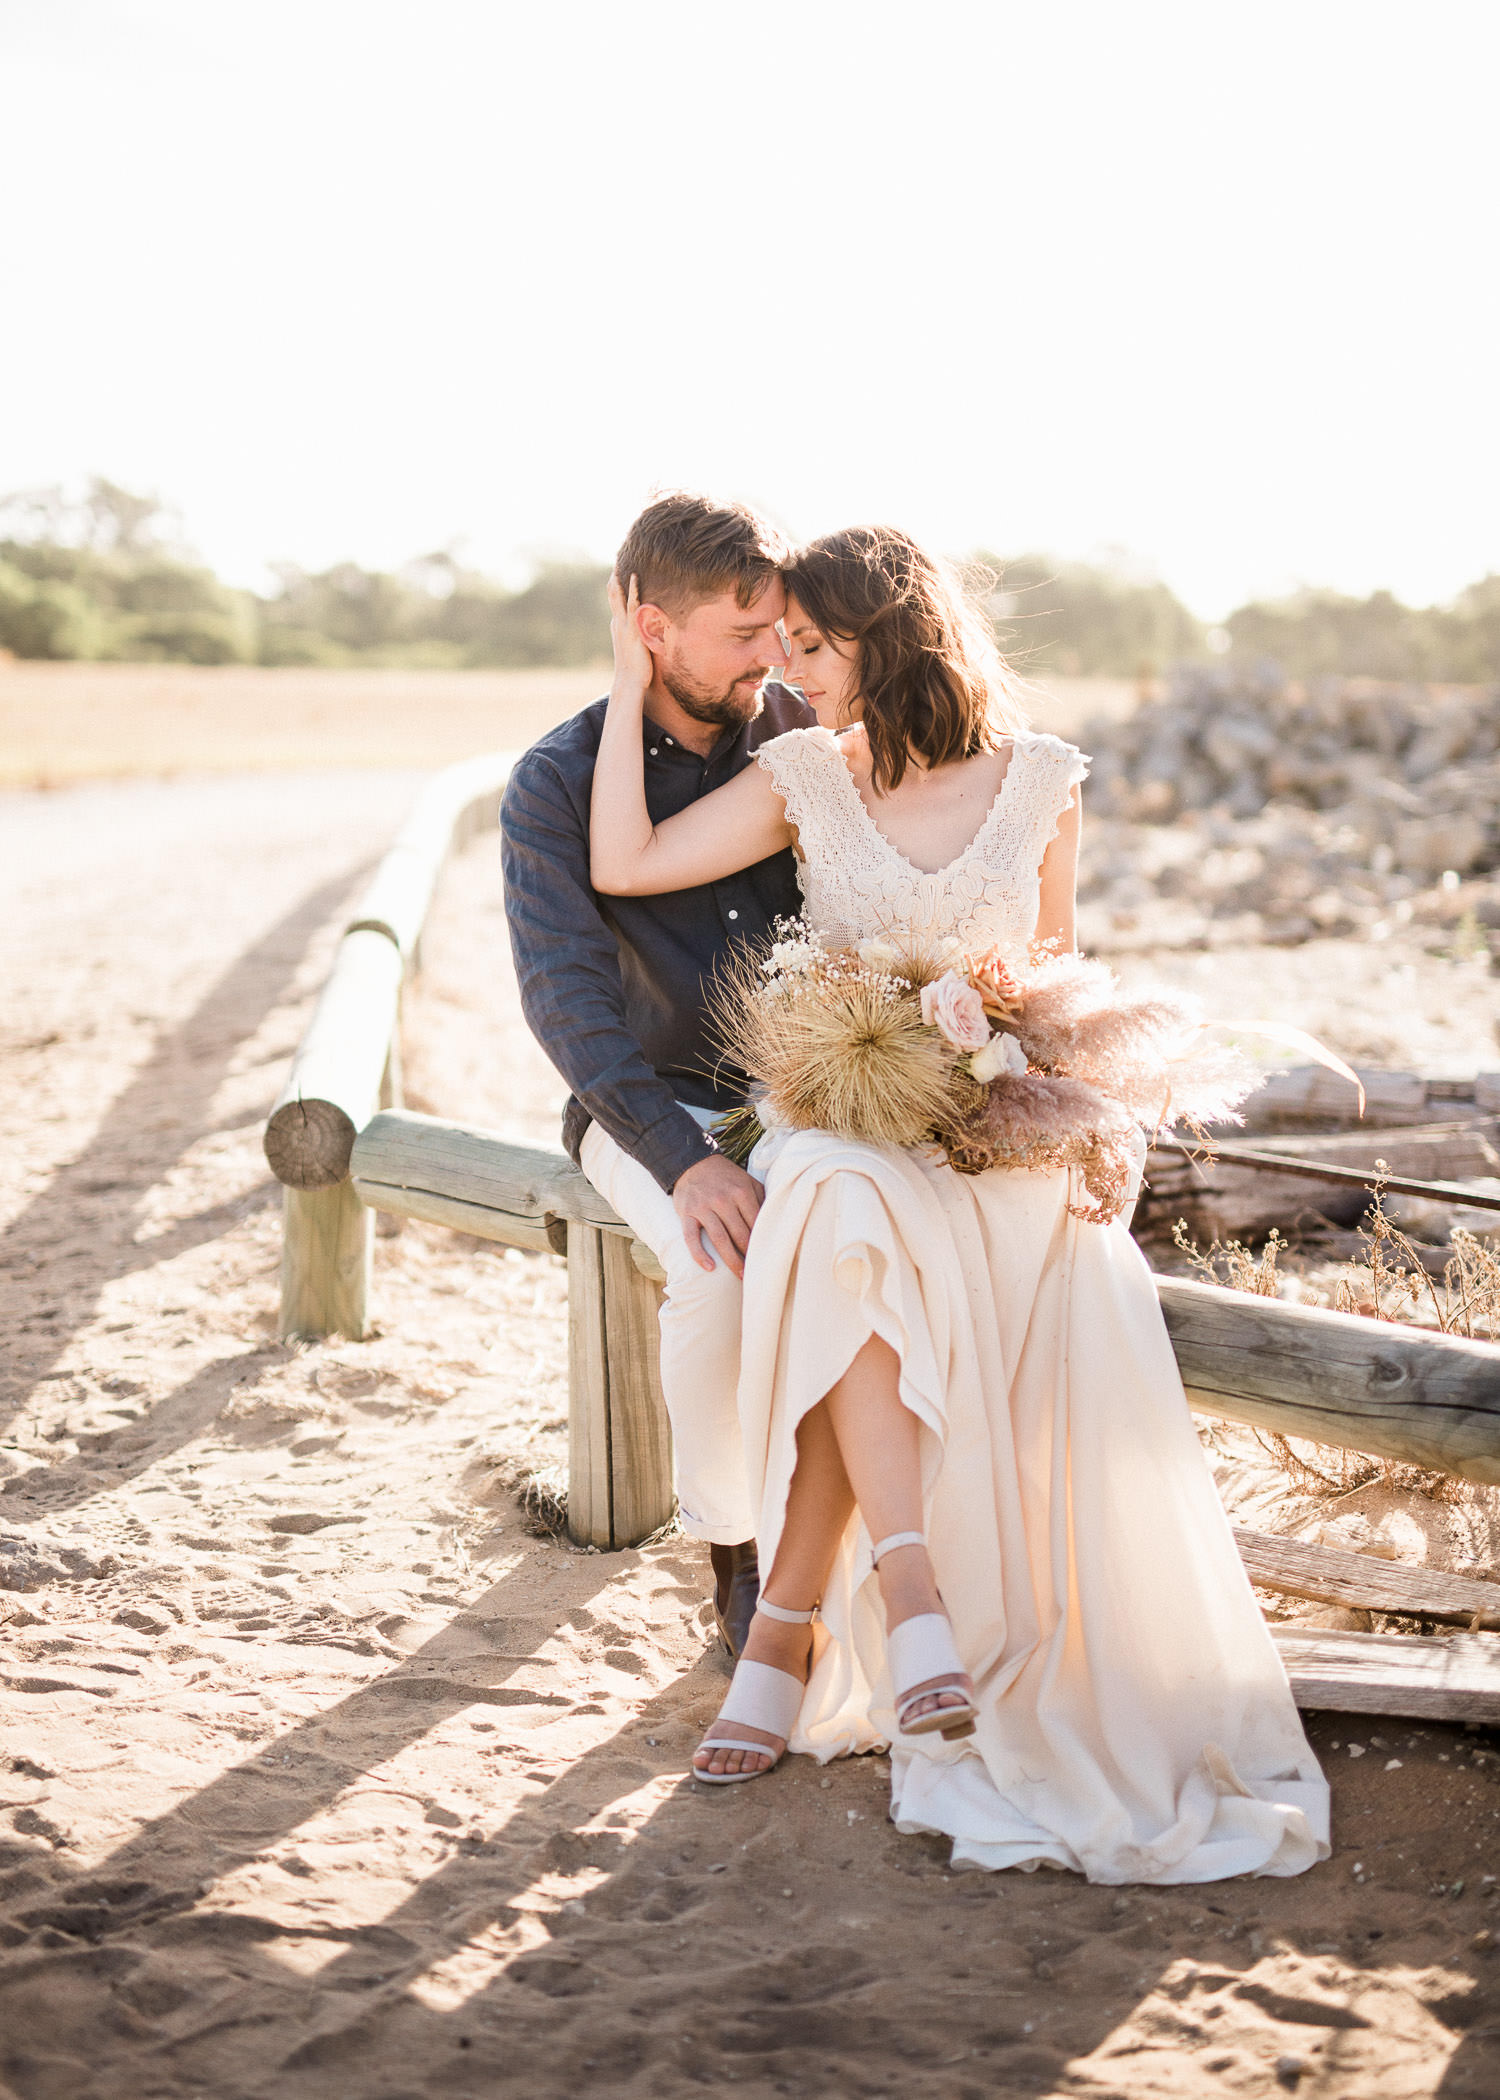 Noah and Jasmine pose during elopement at Perry's Paddock in Perth